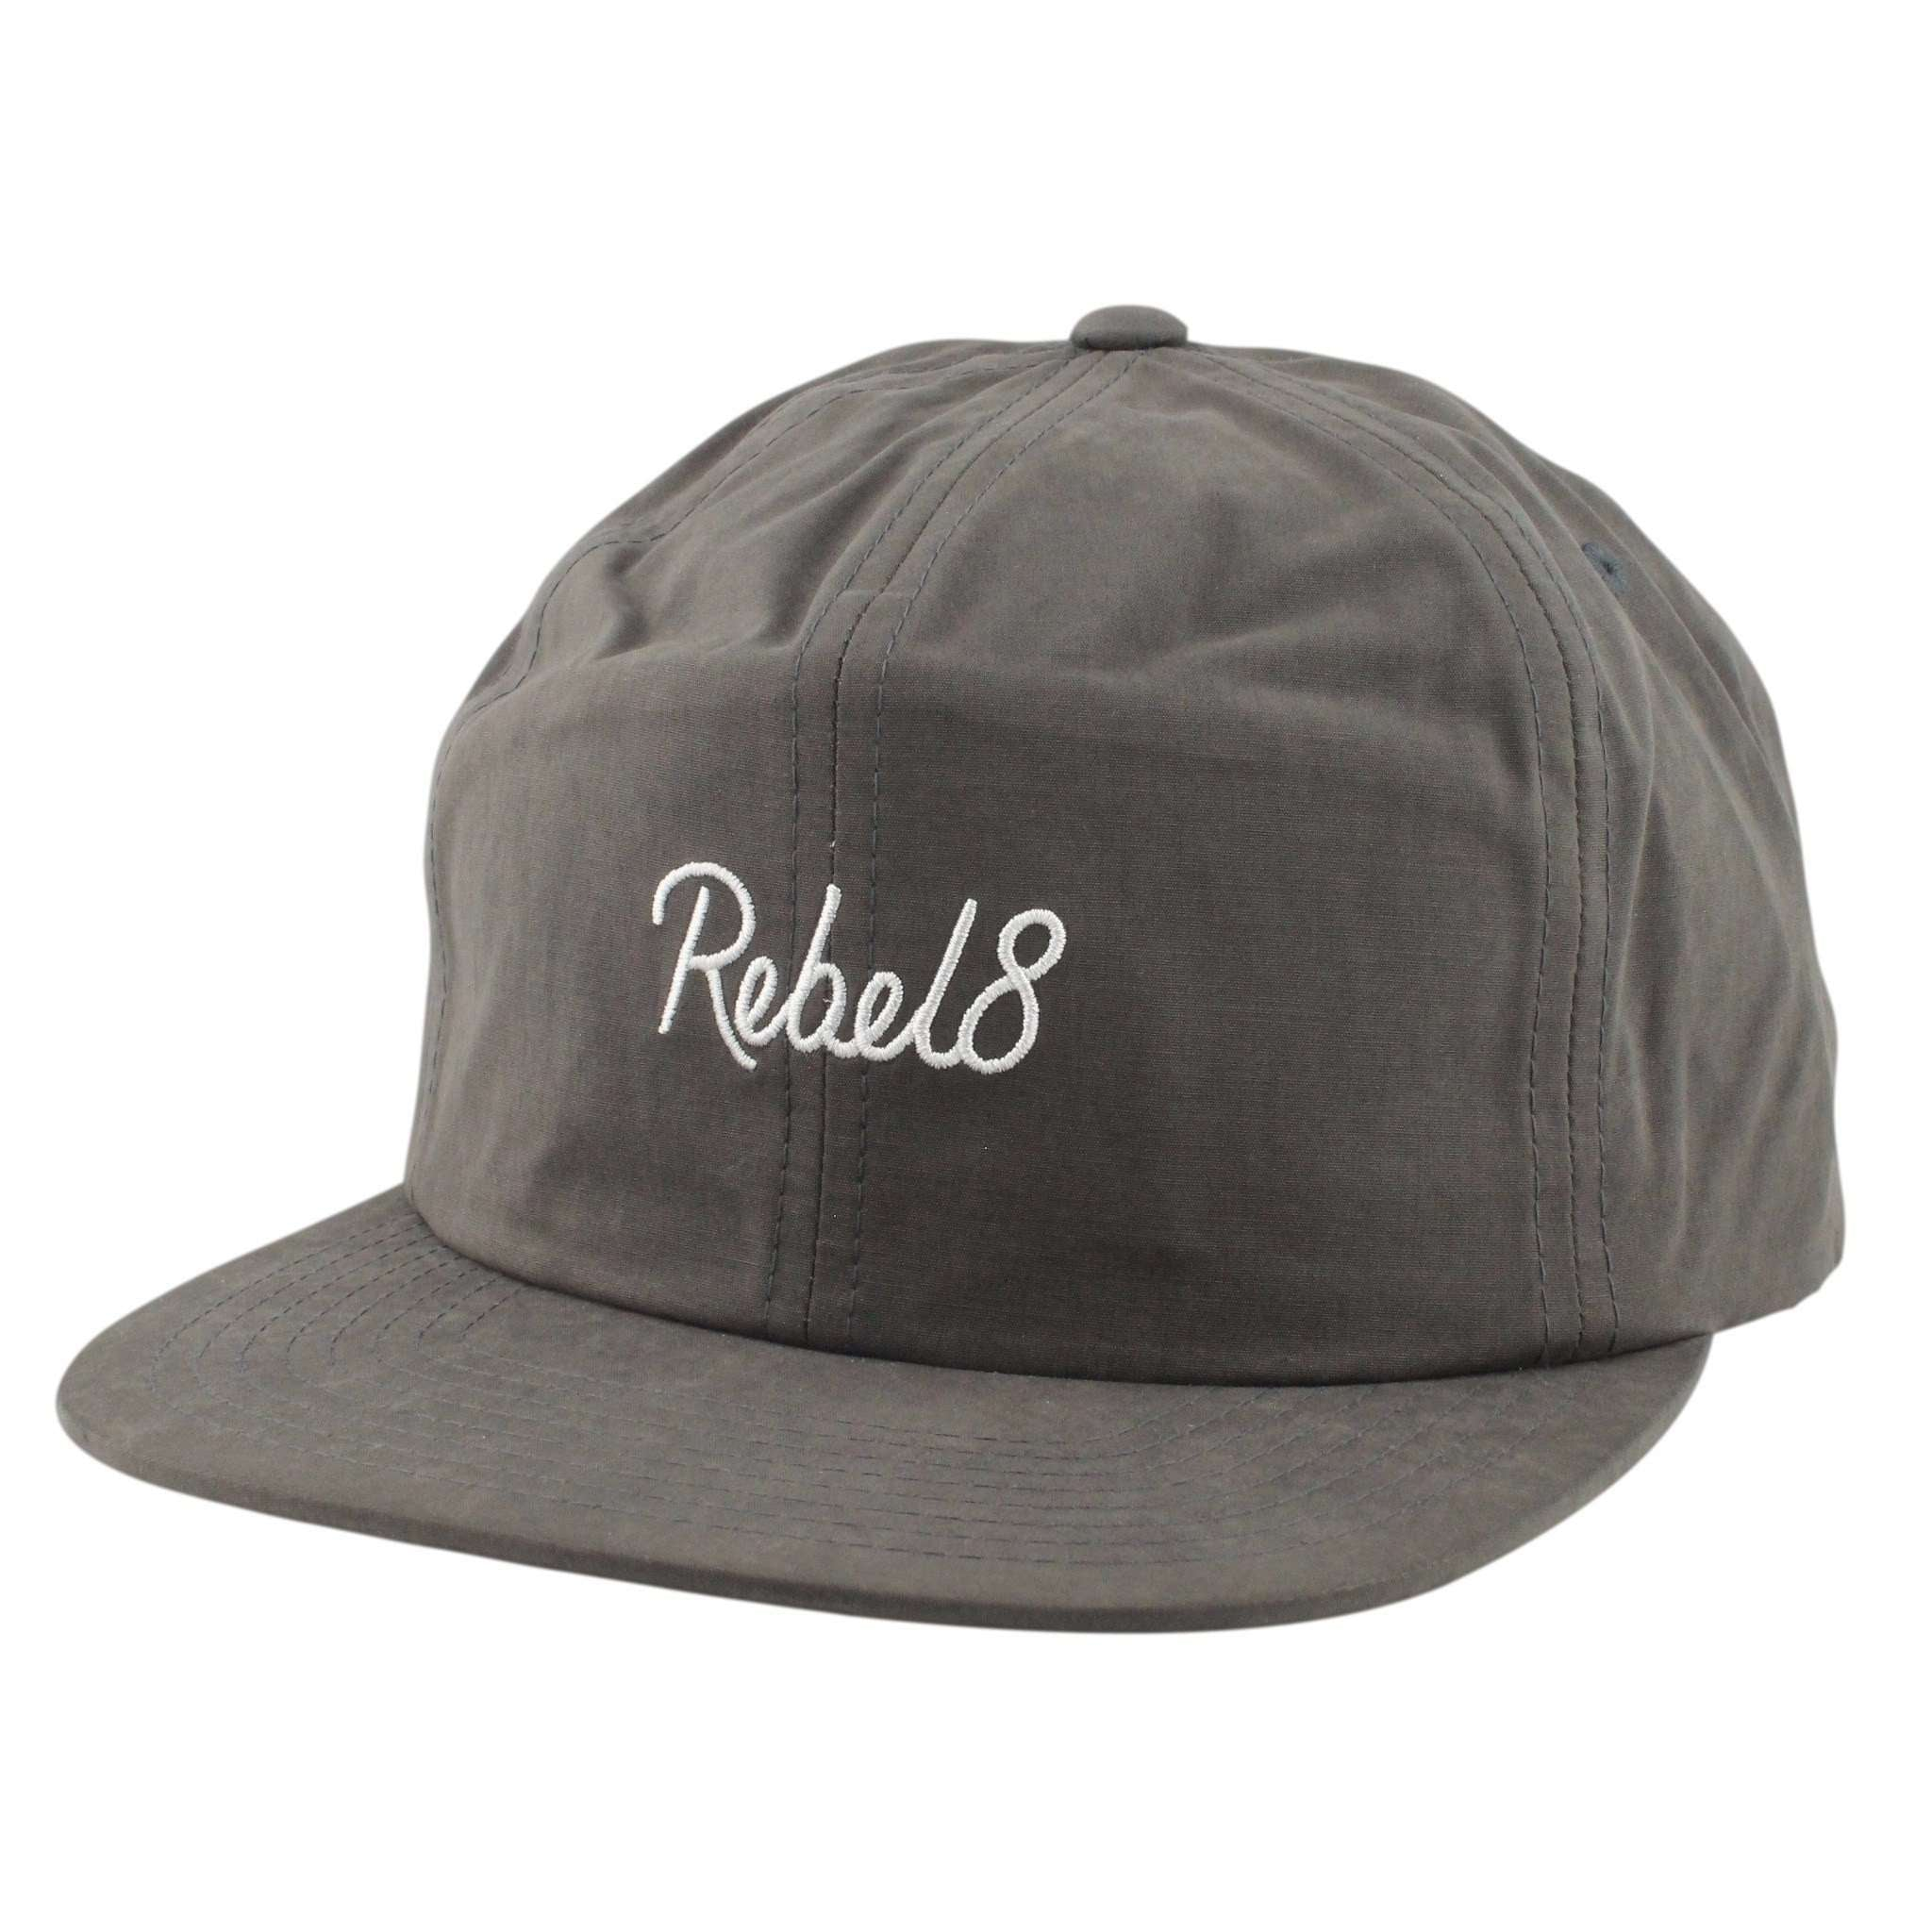 9f73babc083a9 Rebel 8 Lakeview Charcoal Charcoal Unstructured Snapback